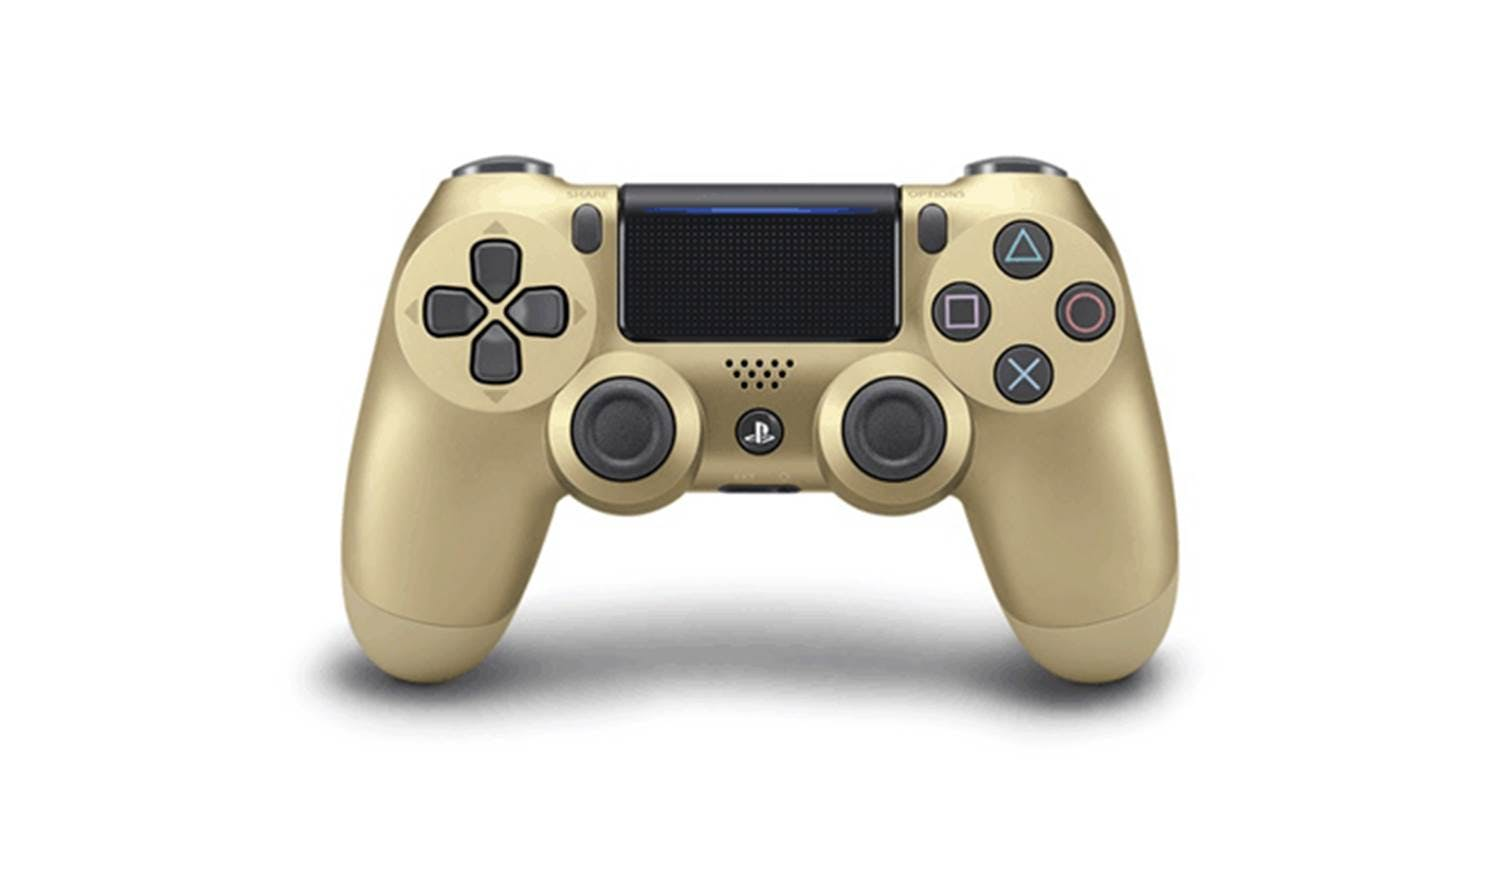 Games Game Console Ps4 Ps3 Pc Xbox 360 More Harvey Norman Kaset Bd Titanfall 2 Sony Playstation4 Dualshock 4 Controller Slim Gold